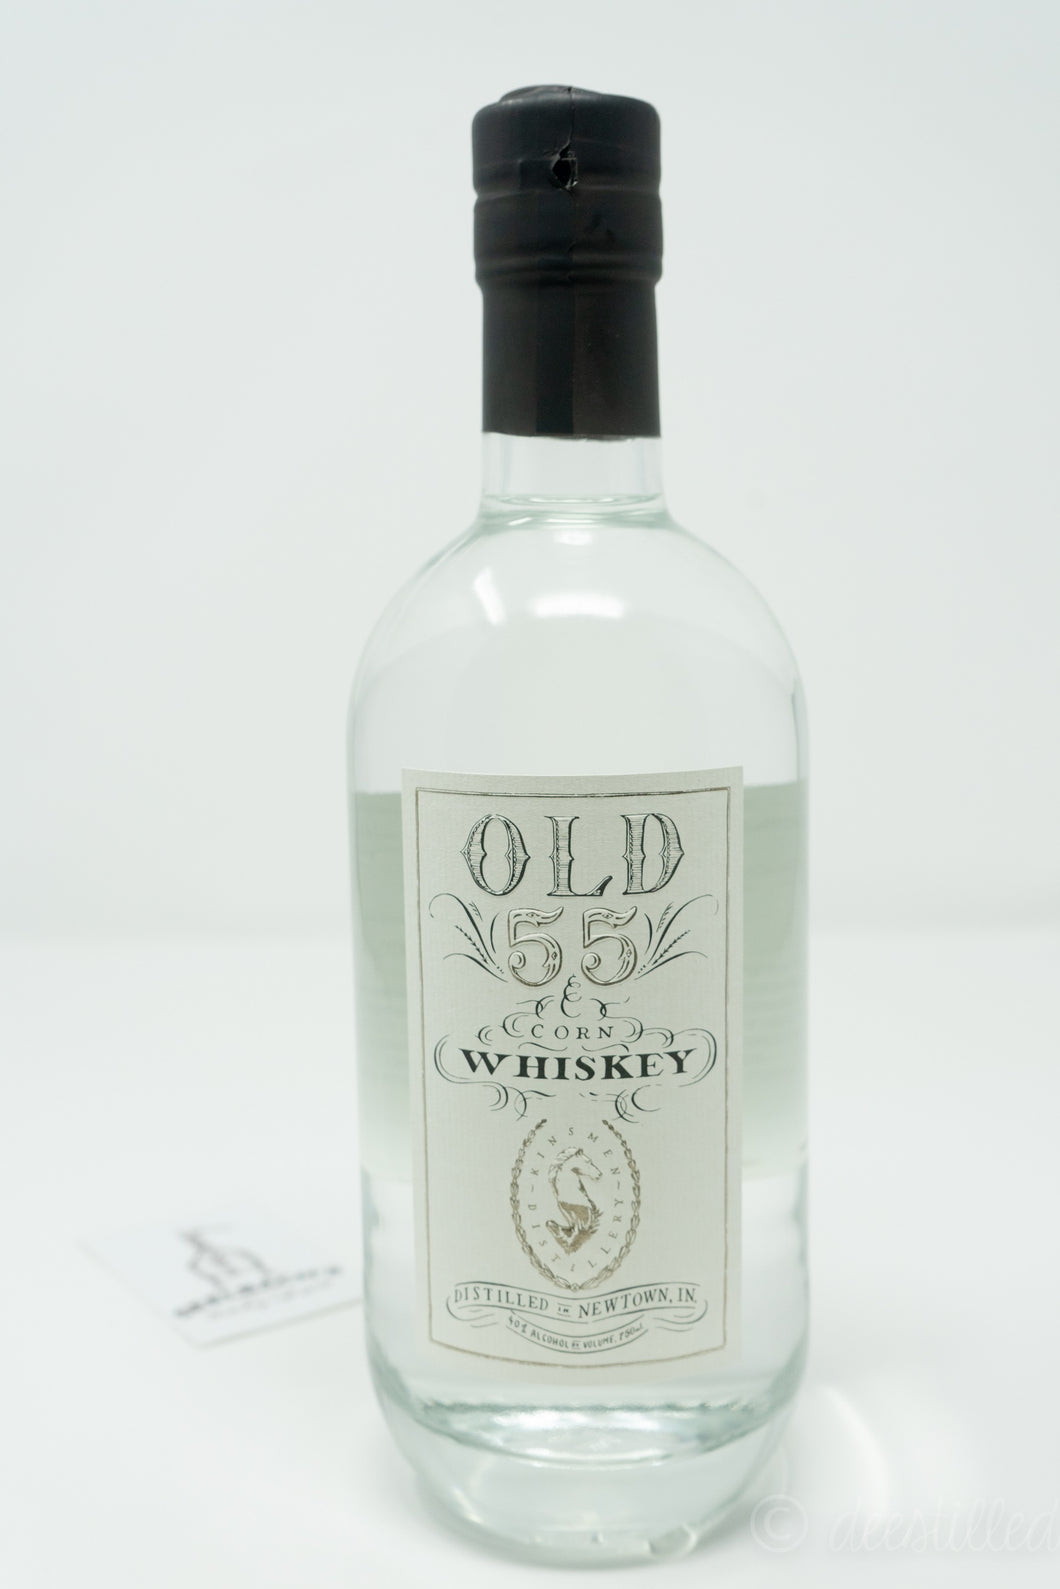 Old 55 Corn Whiskey